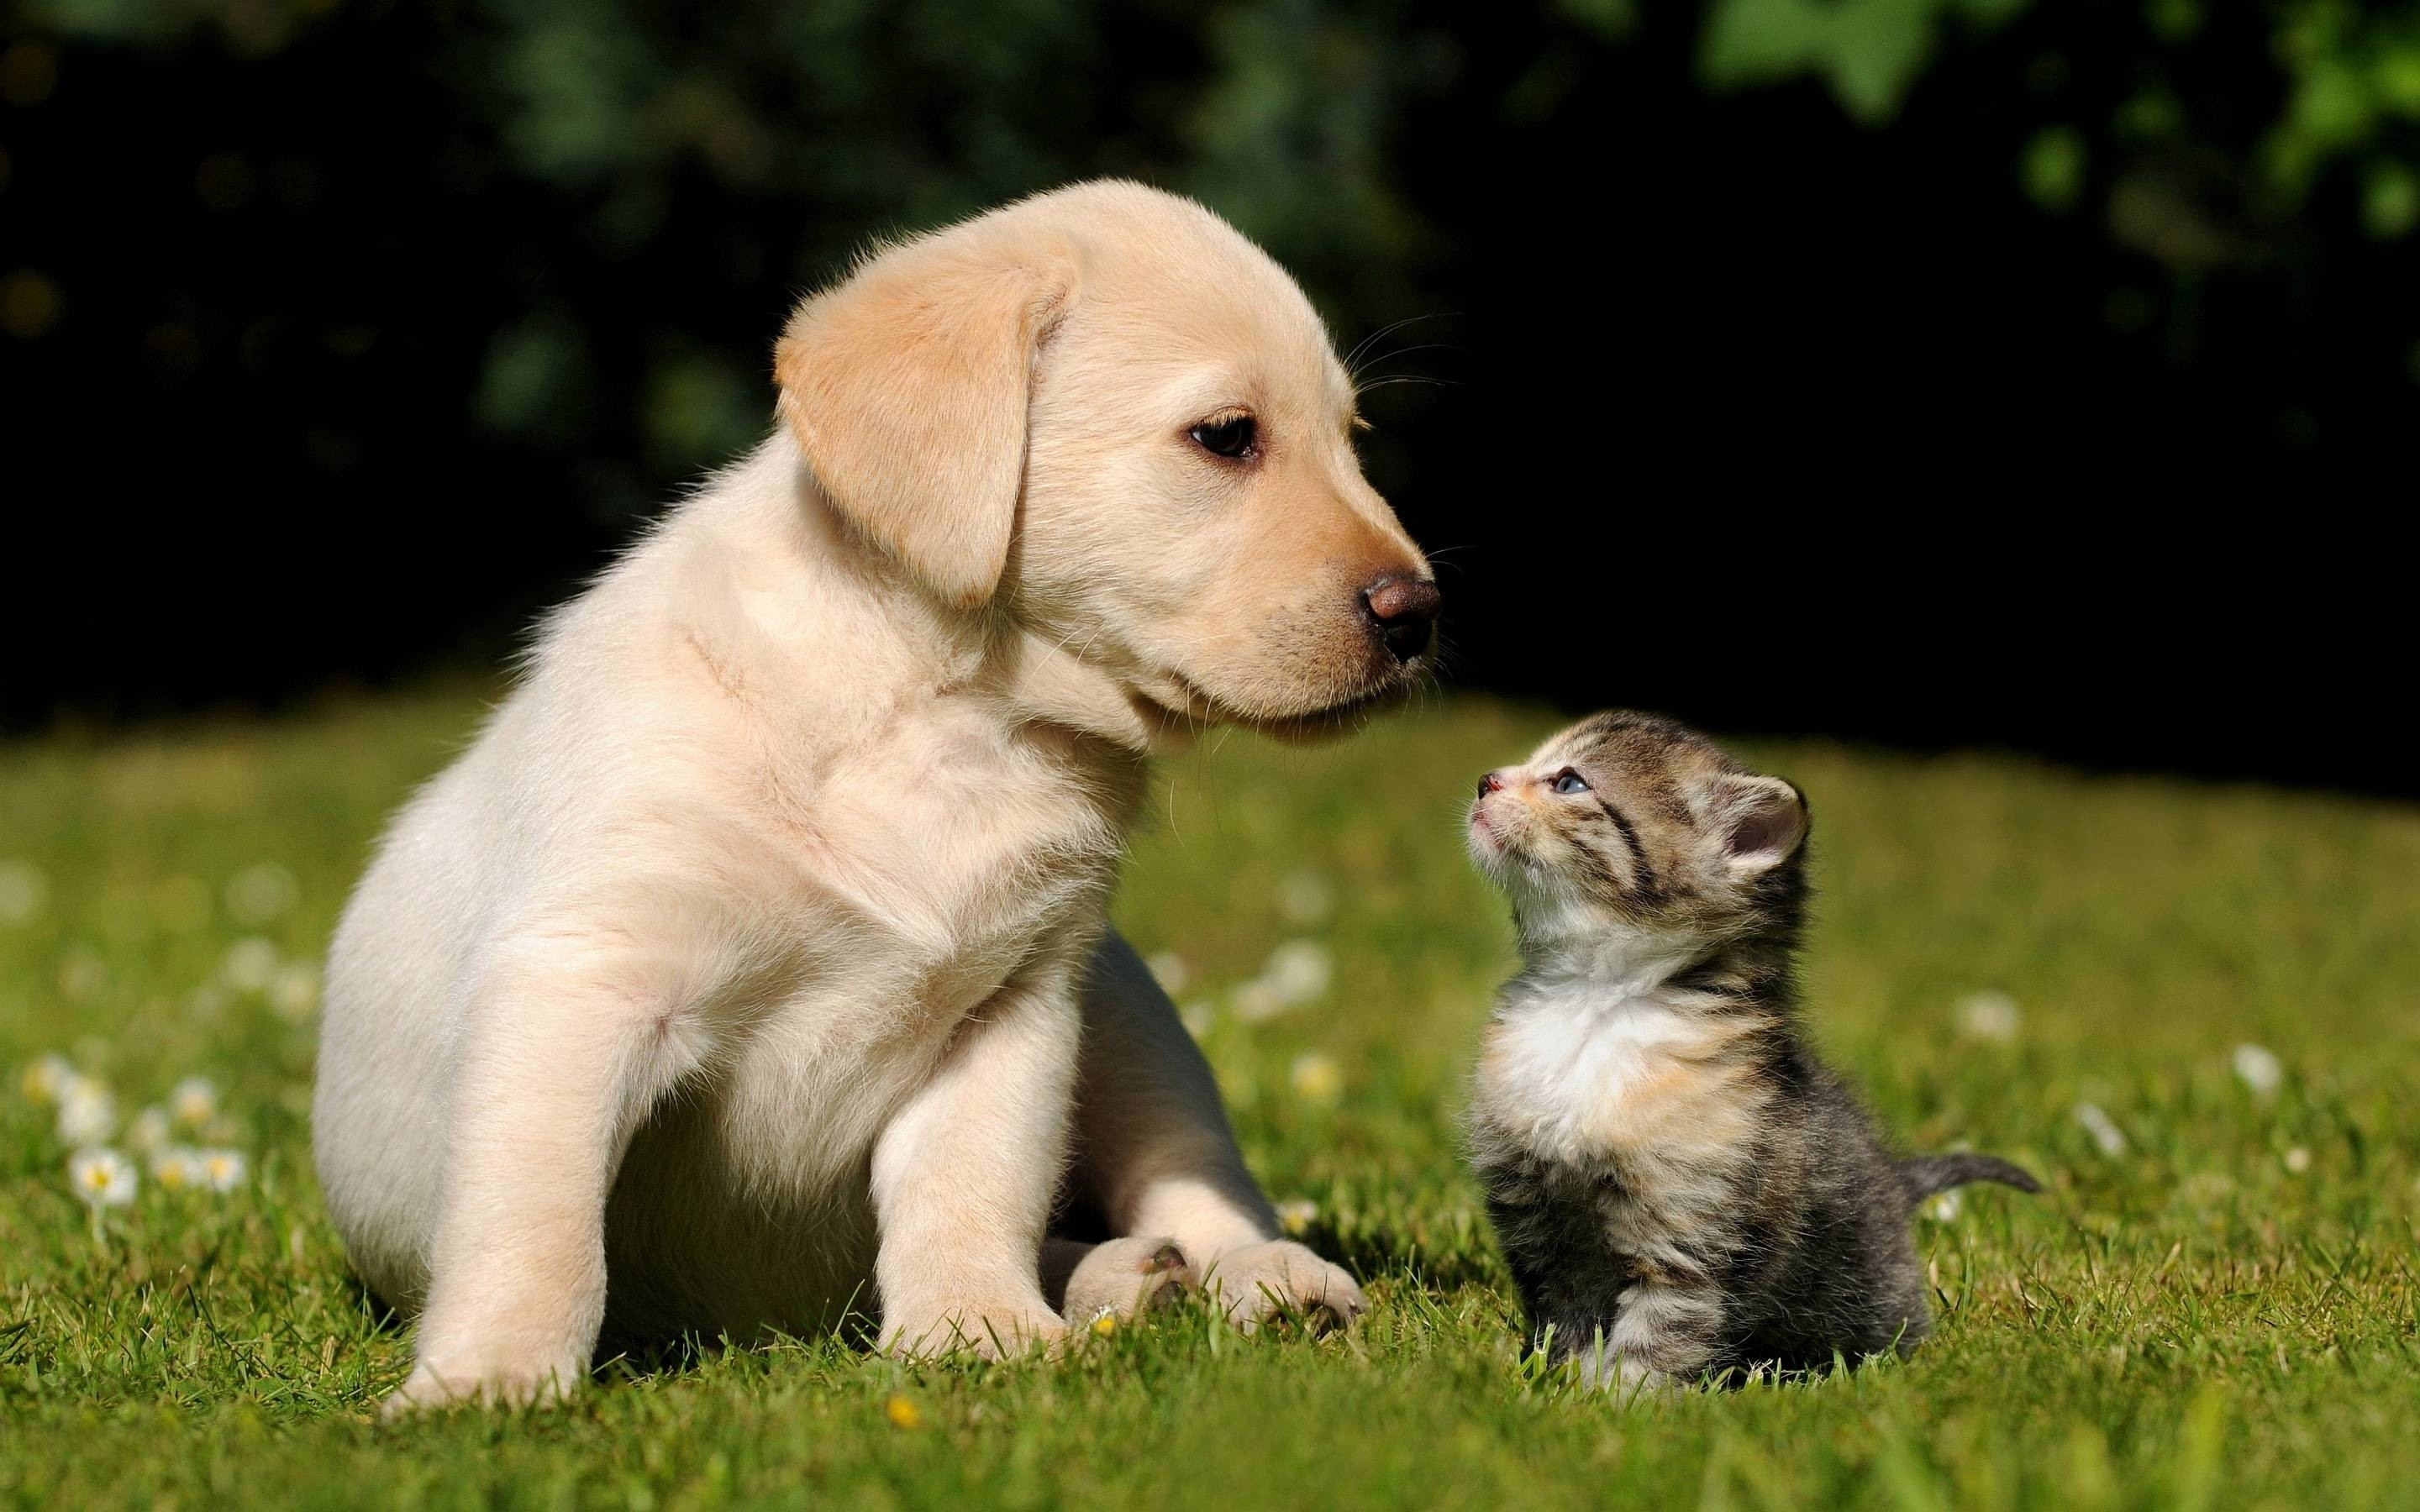 cute puppy and kitten wallpapers (58+ images)